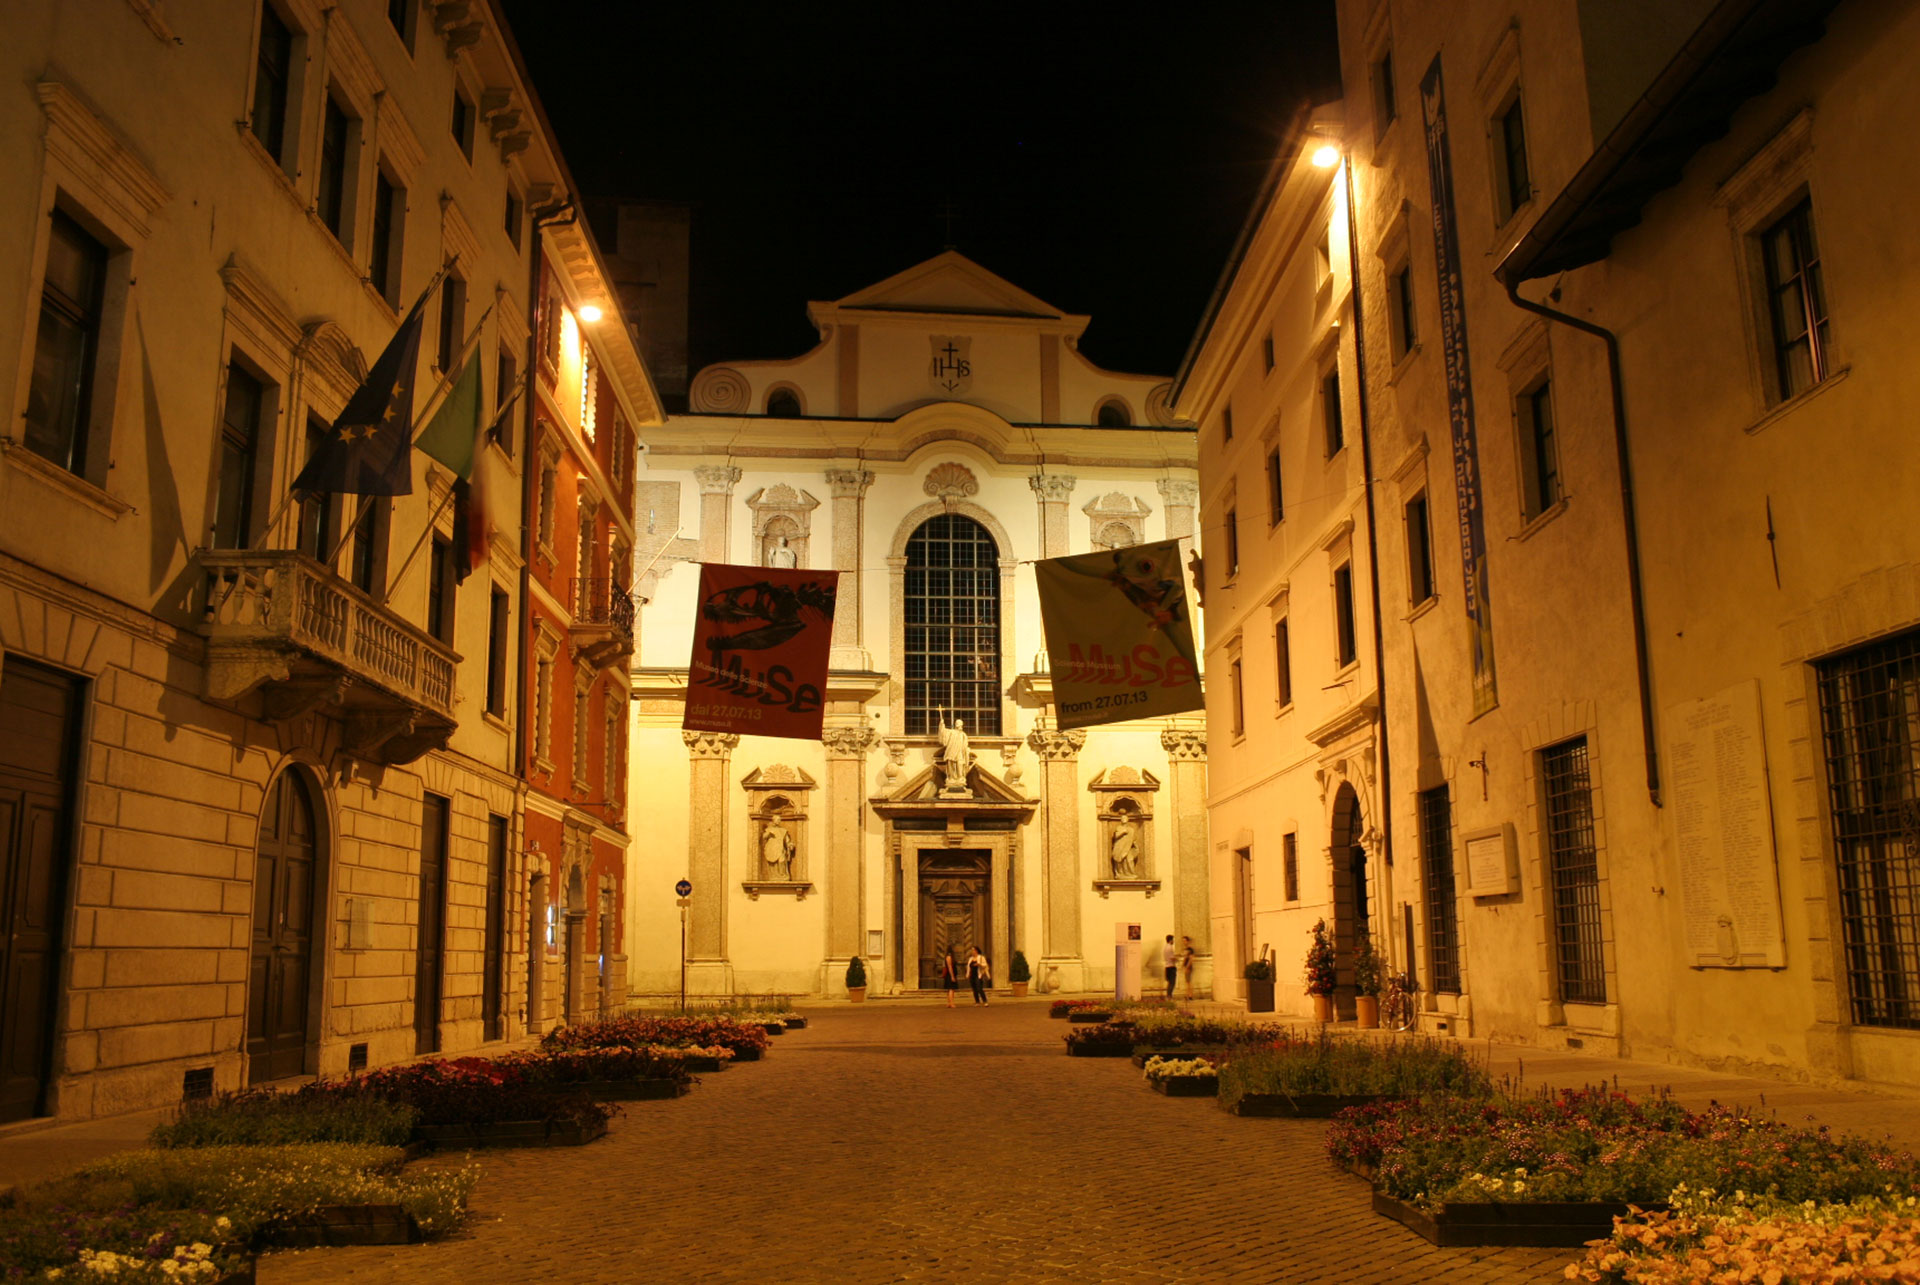 TRENTO'S LIGHTING PLAN